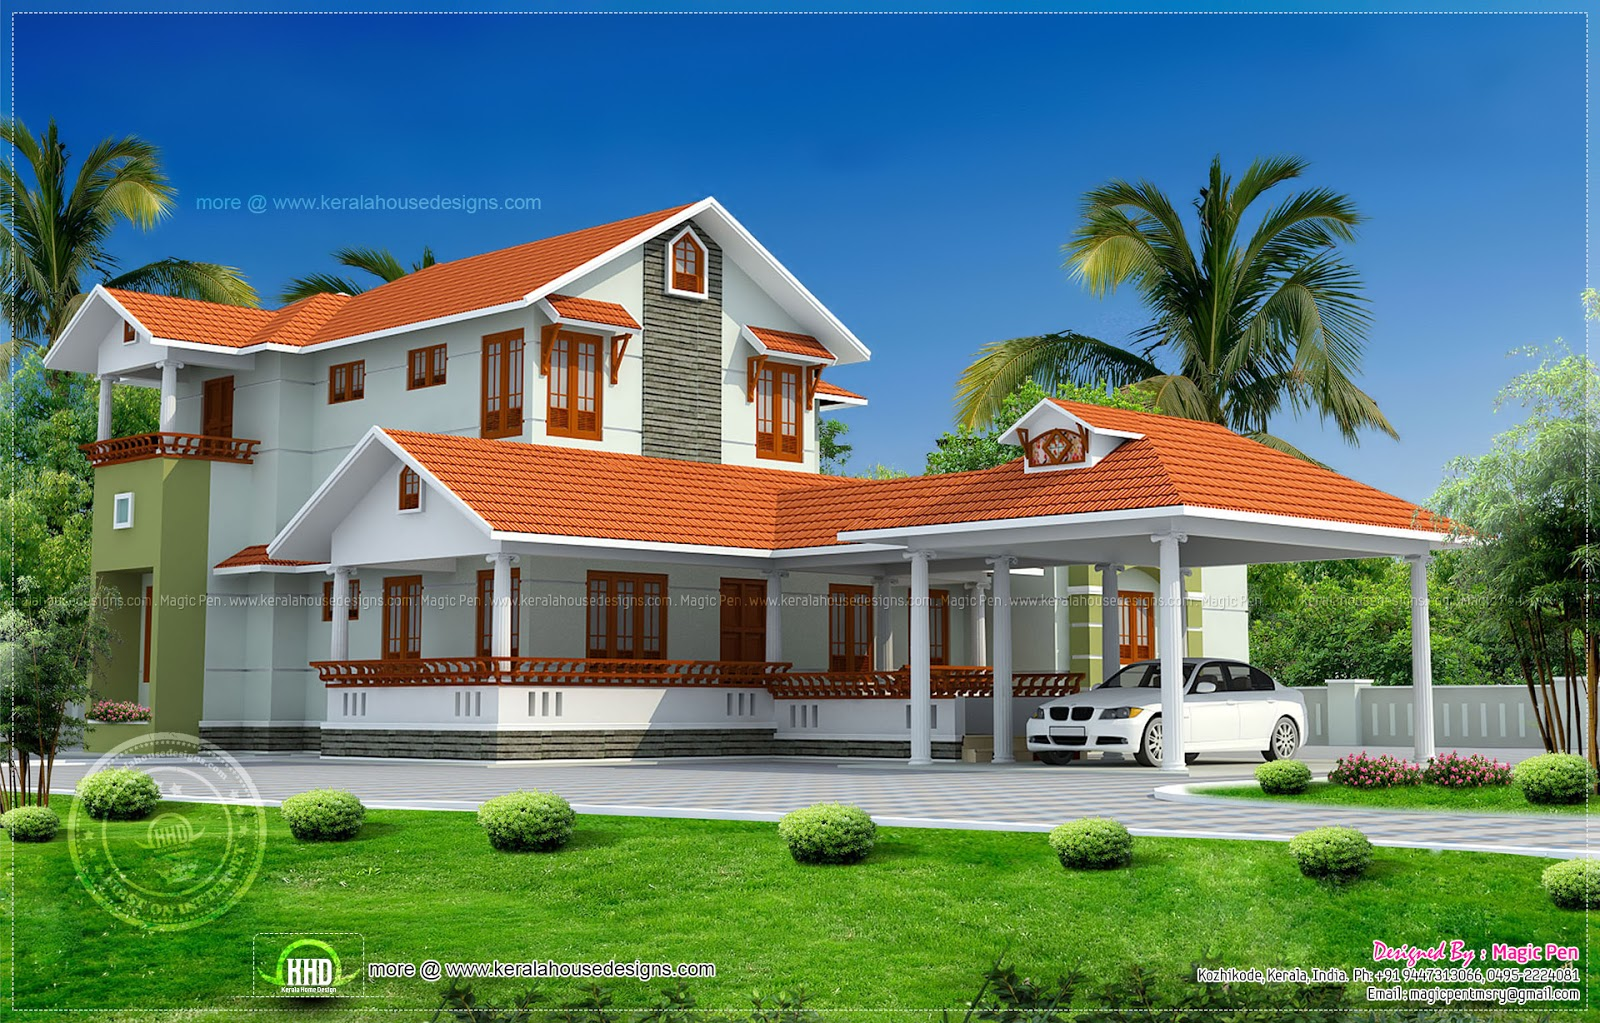 Kerala model double storied house kerala home design and for House plans kerala model photos